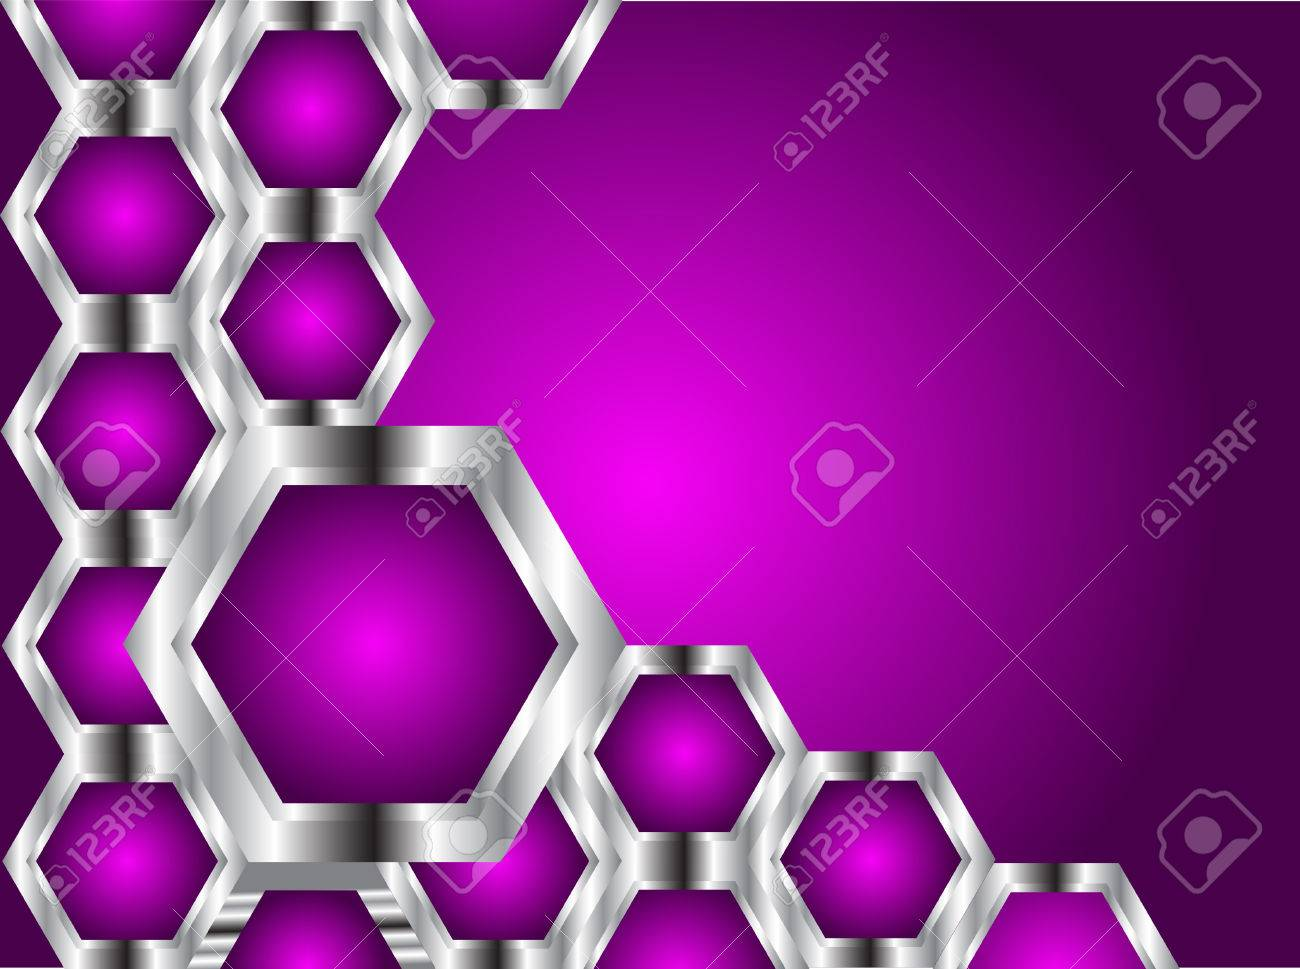 A Purple And Silver Business Card Or Background Template With Hexagons On Black Base